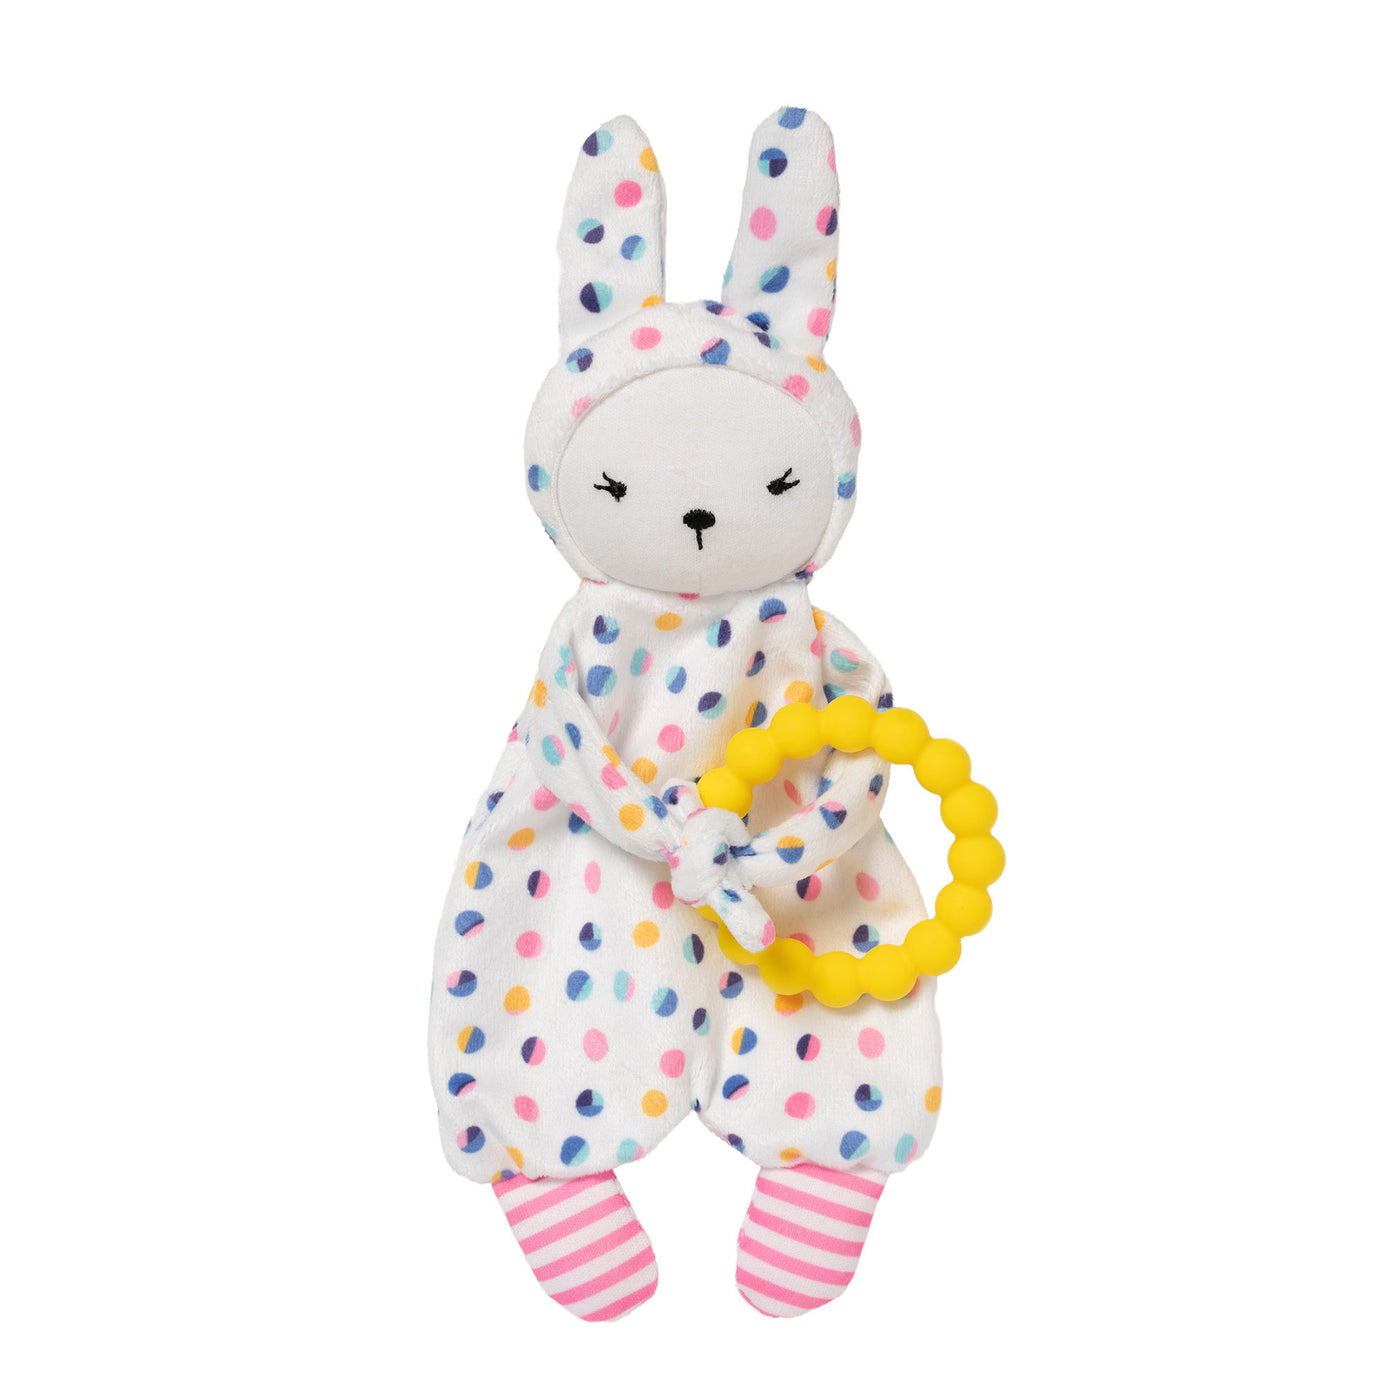 Cherry Blossom Baby Bunny - Manhattan Toy